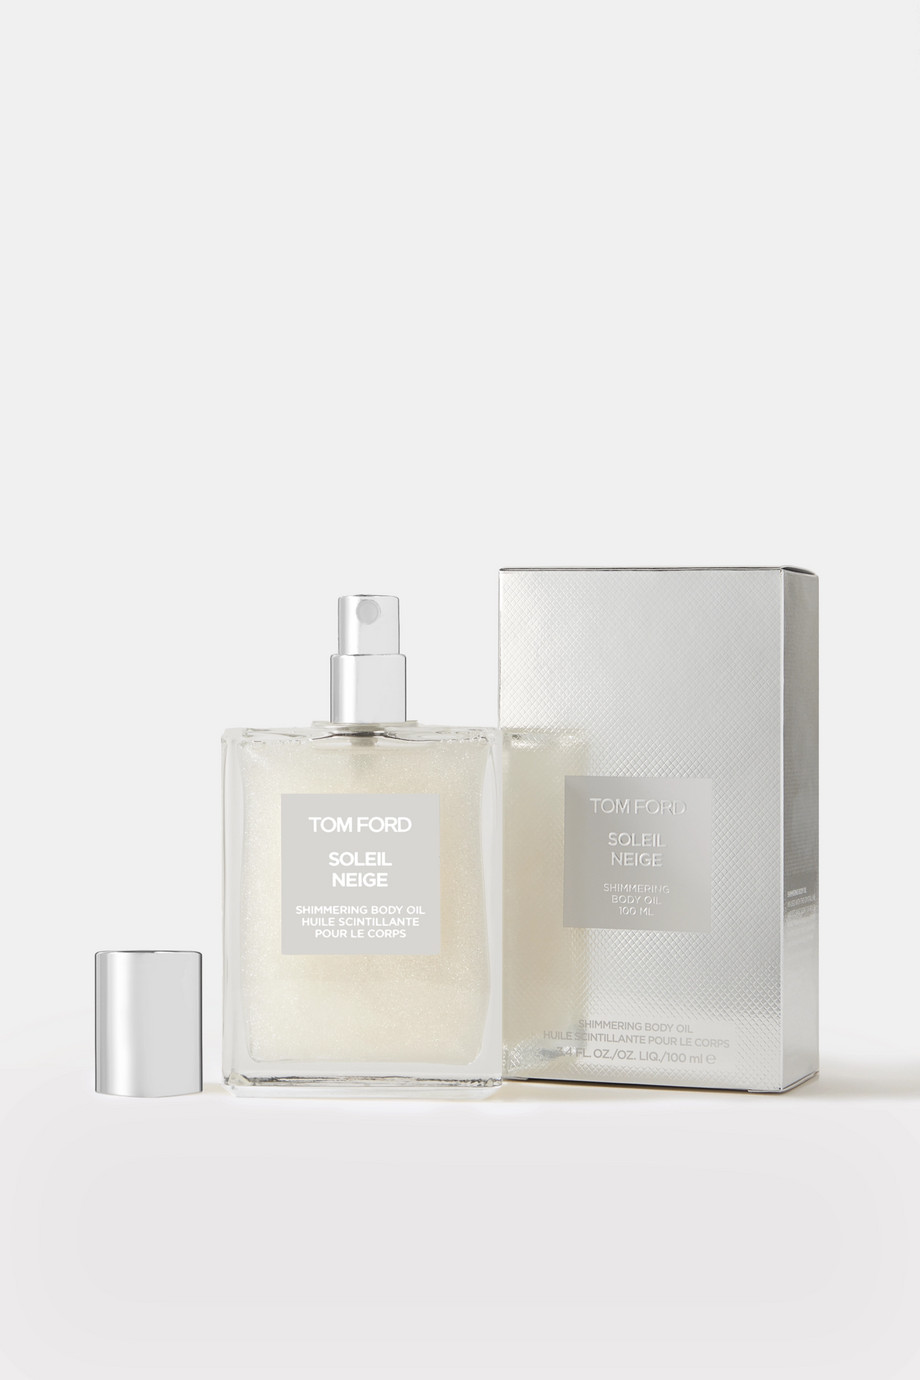 TOM FORD BEAUTY Soleil Neige Shimmering Body Oil - 01 Platinum, 100ml